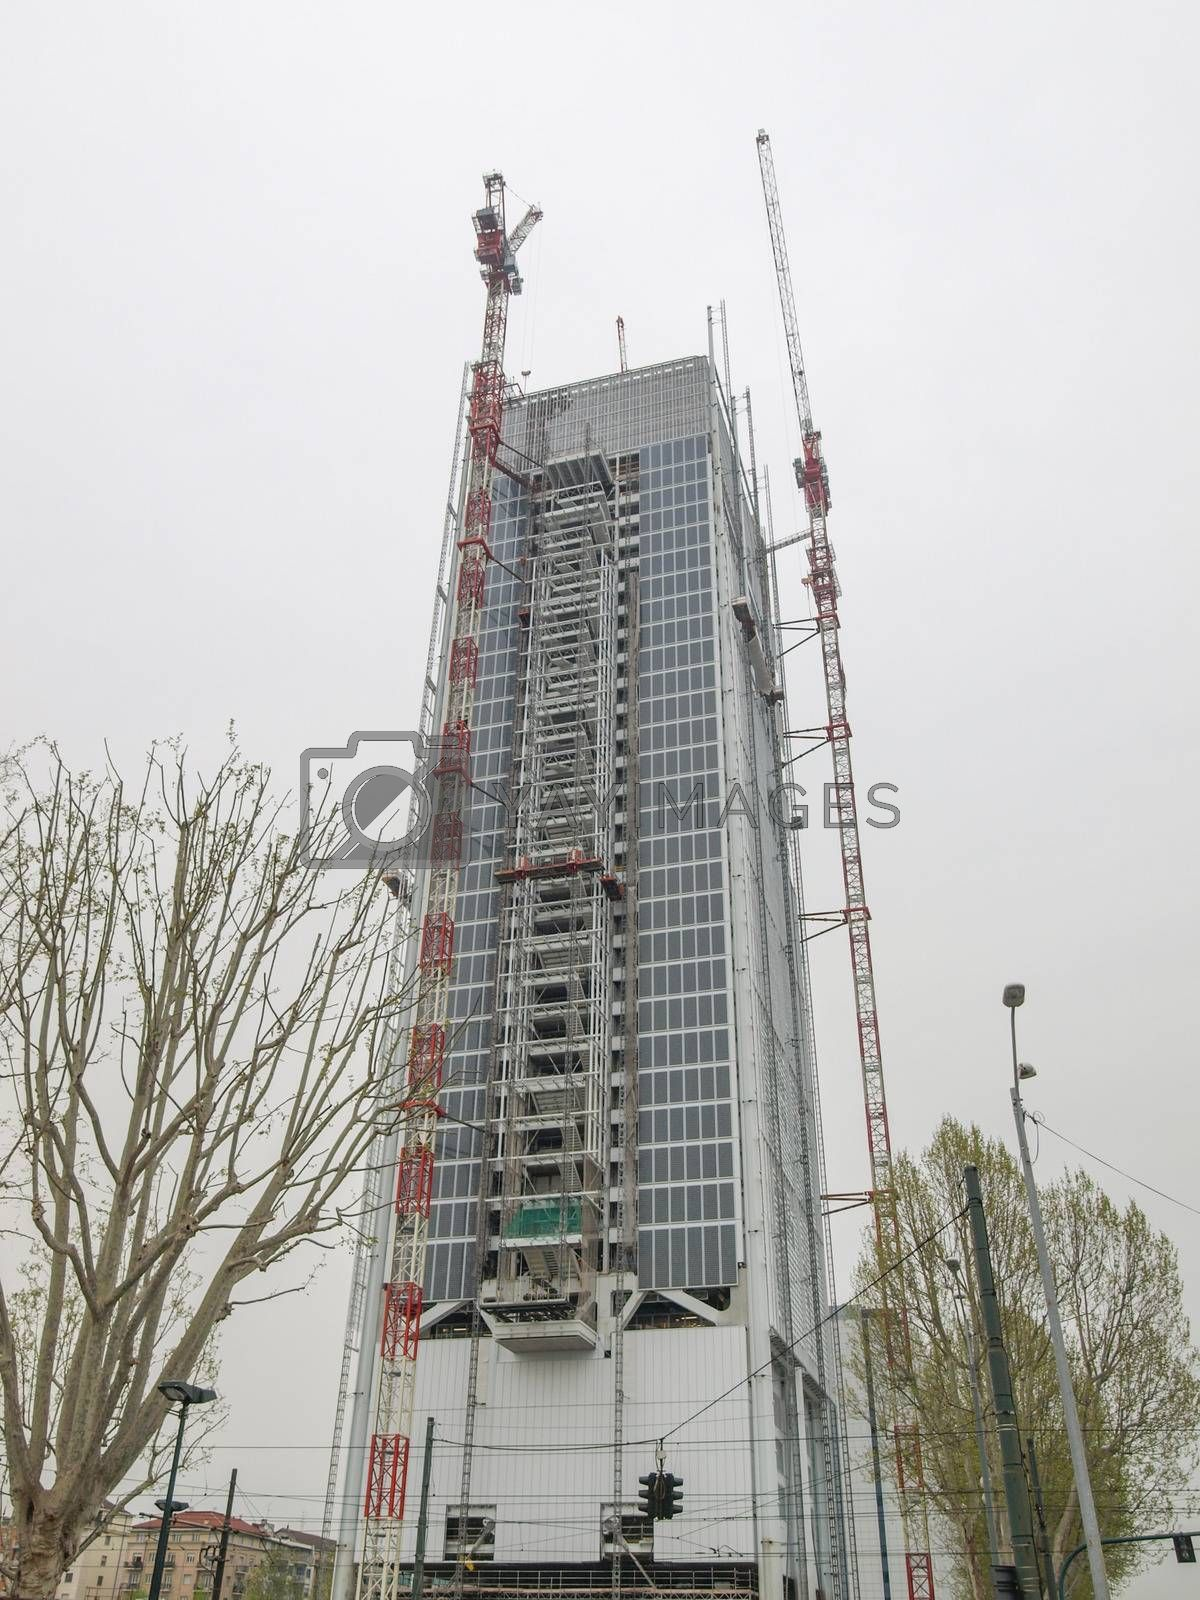 TURIN, ITALY - APRIL 03, 2014: The new San Paolo skyscraper designed by Renzo Piano is the highest building in town